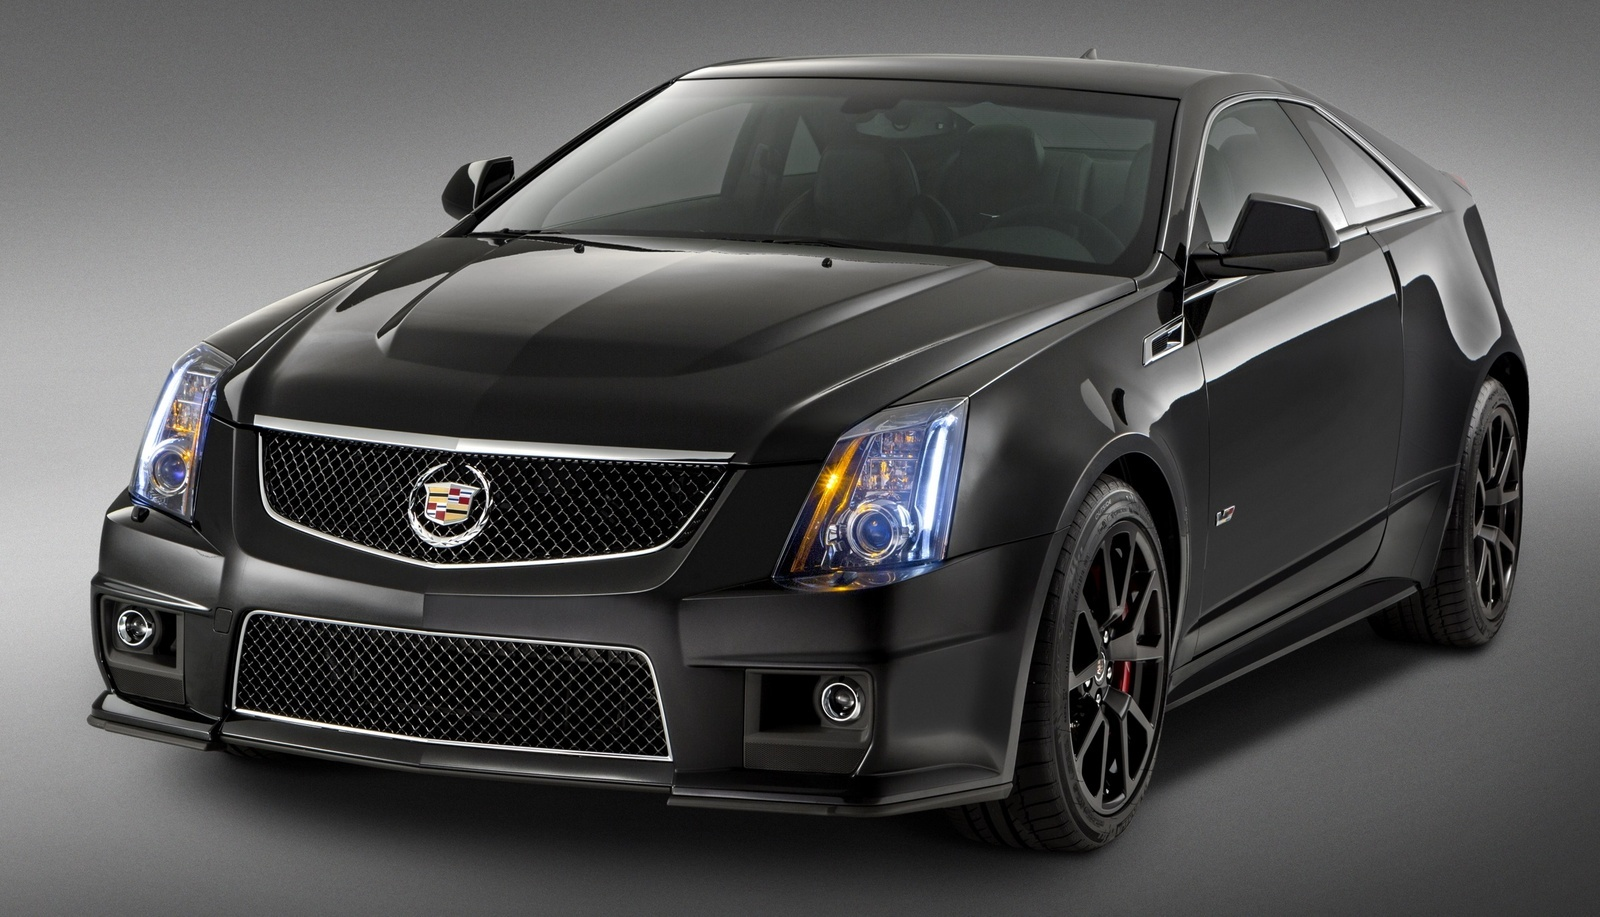 car view dealer cadillac premium coupe cts brooklyn leasing staten new inventory ats cadillacats interior island